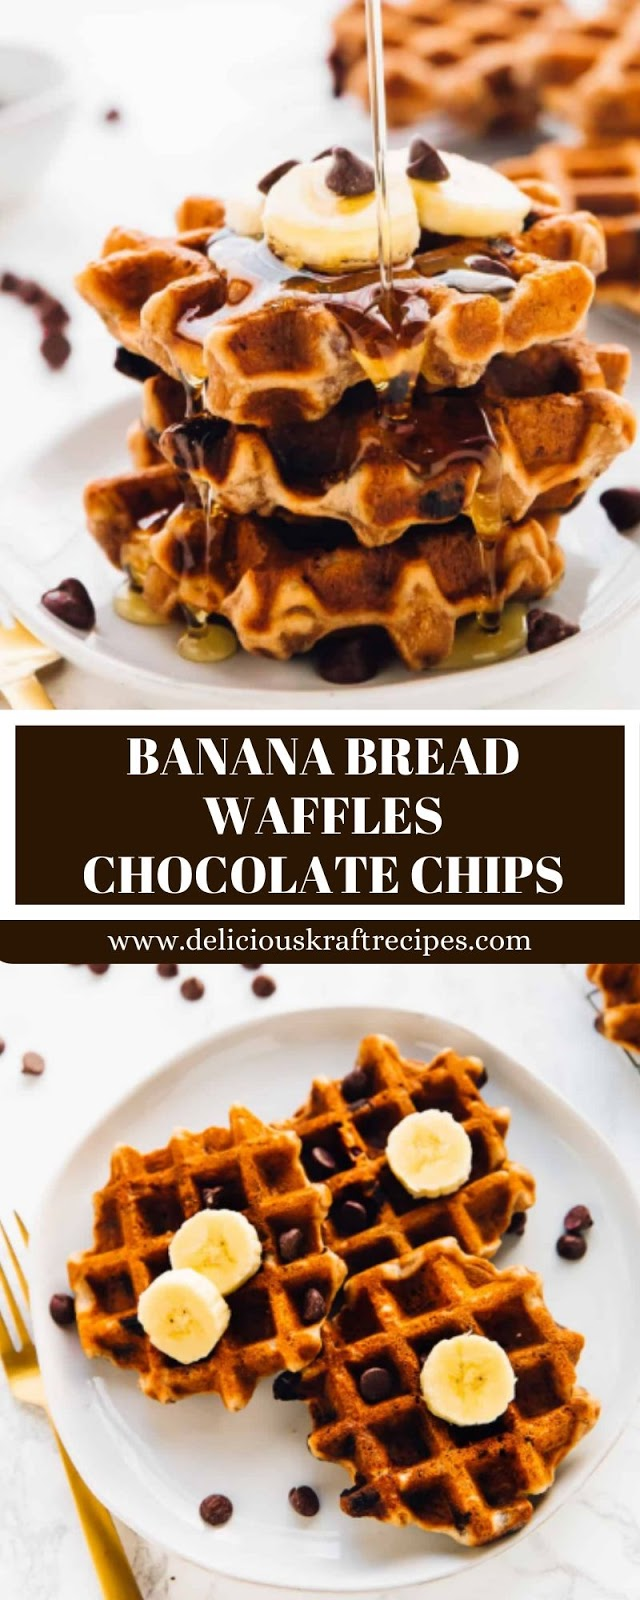 BANANA BREAD WAFFLES CHOCOLATE CHIPS